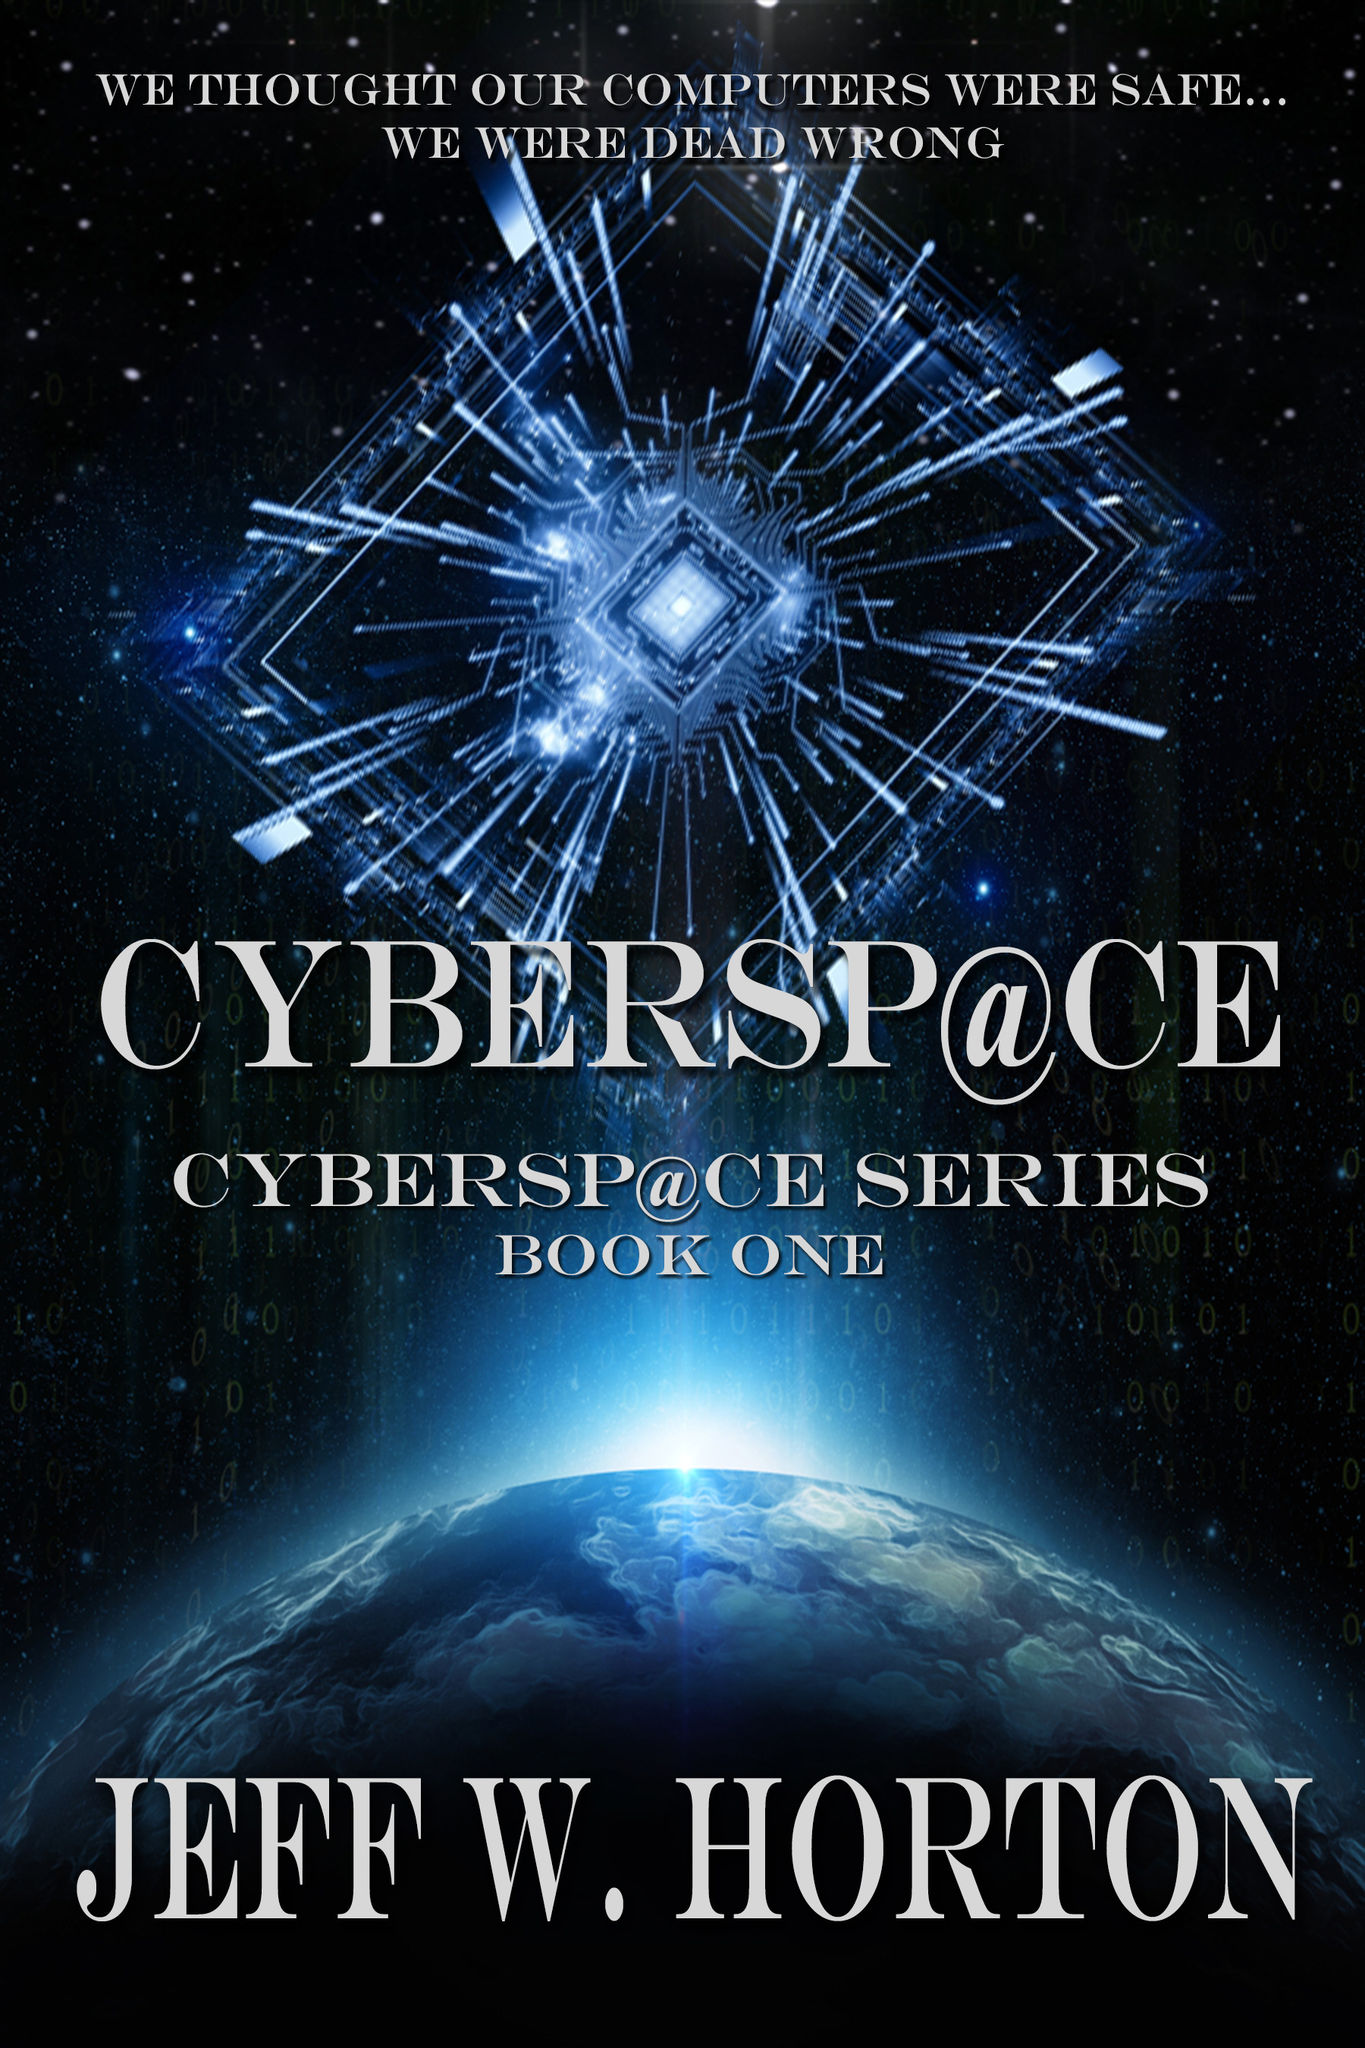 CYBERSP@CE: Cybersp@ce Series Book One